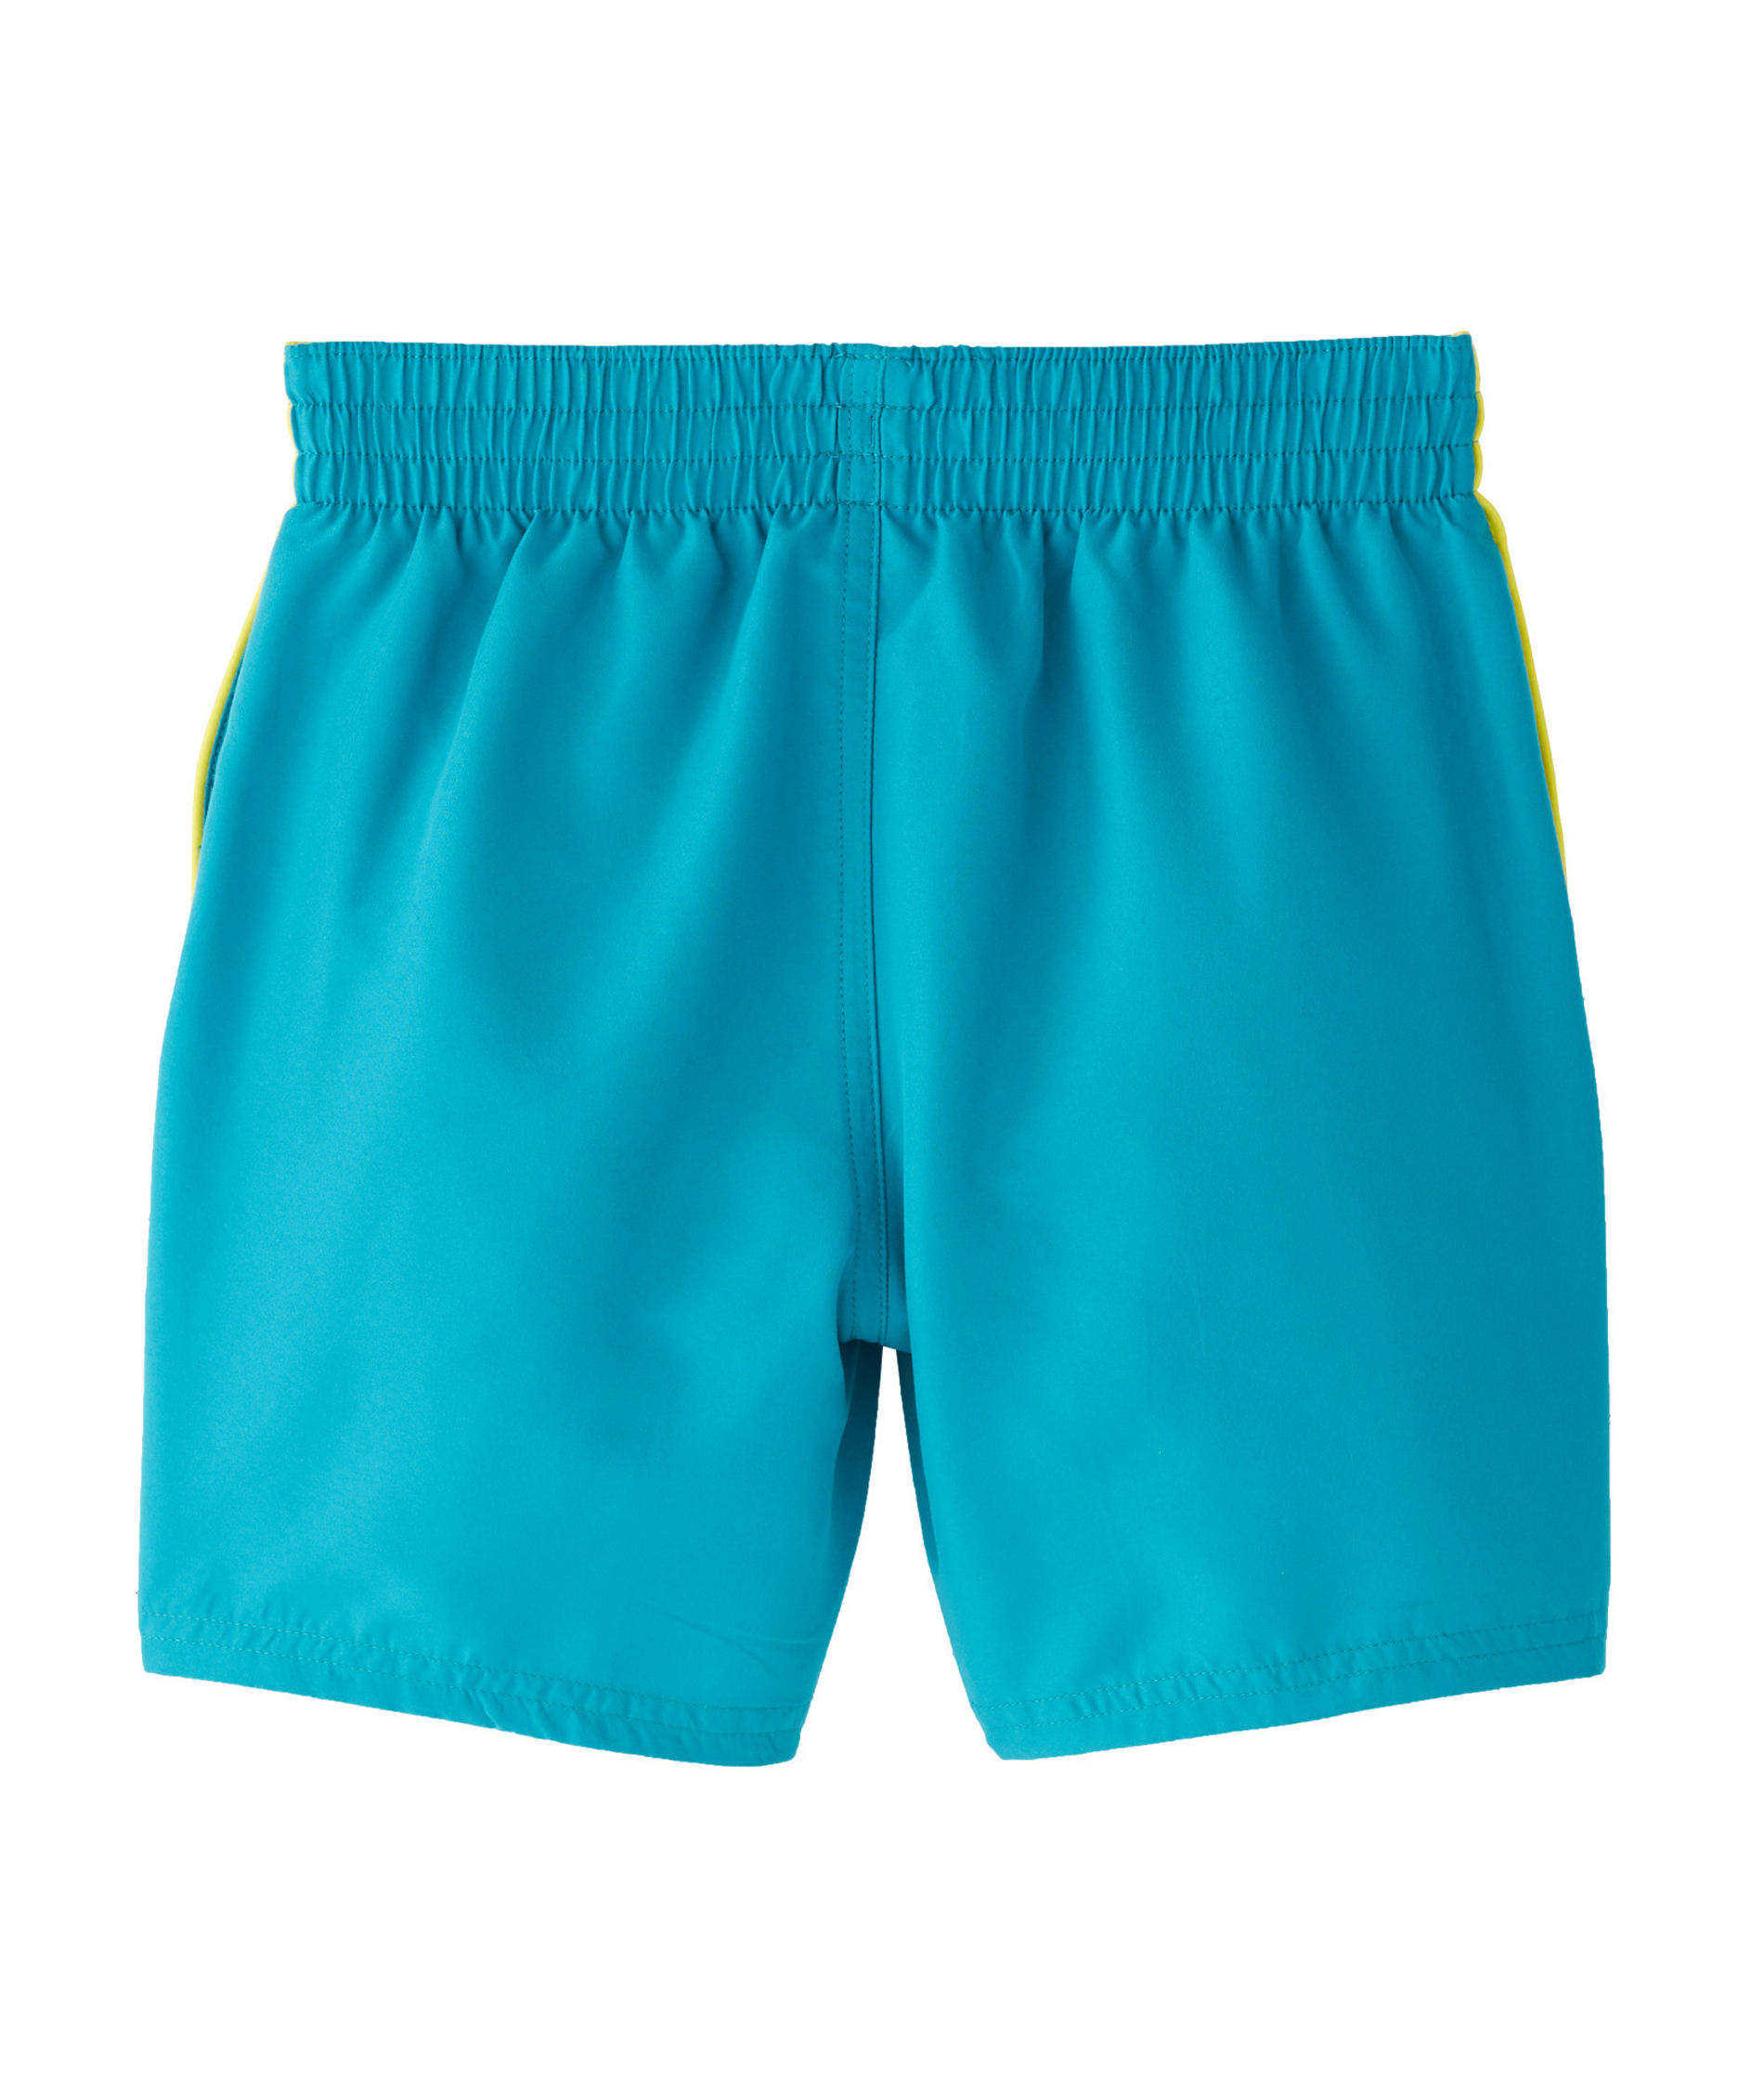 Nike Swim Boys 4 Volley Short - Spirit Teal